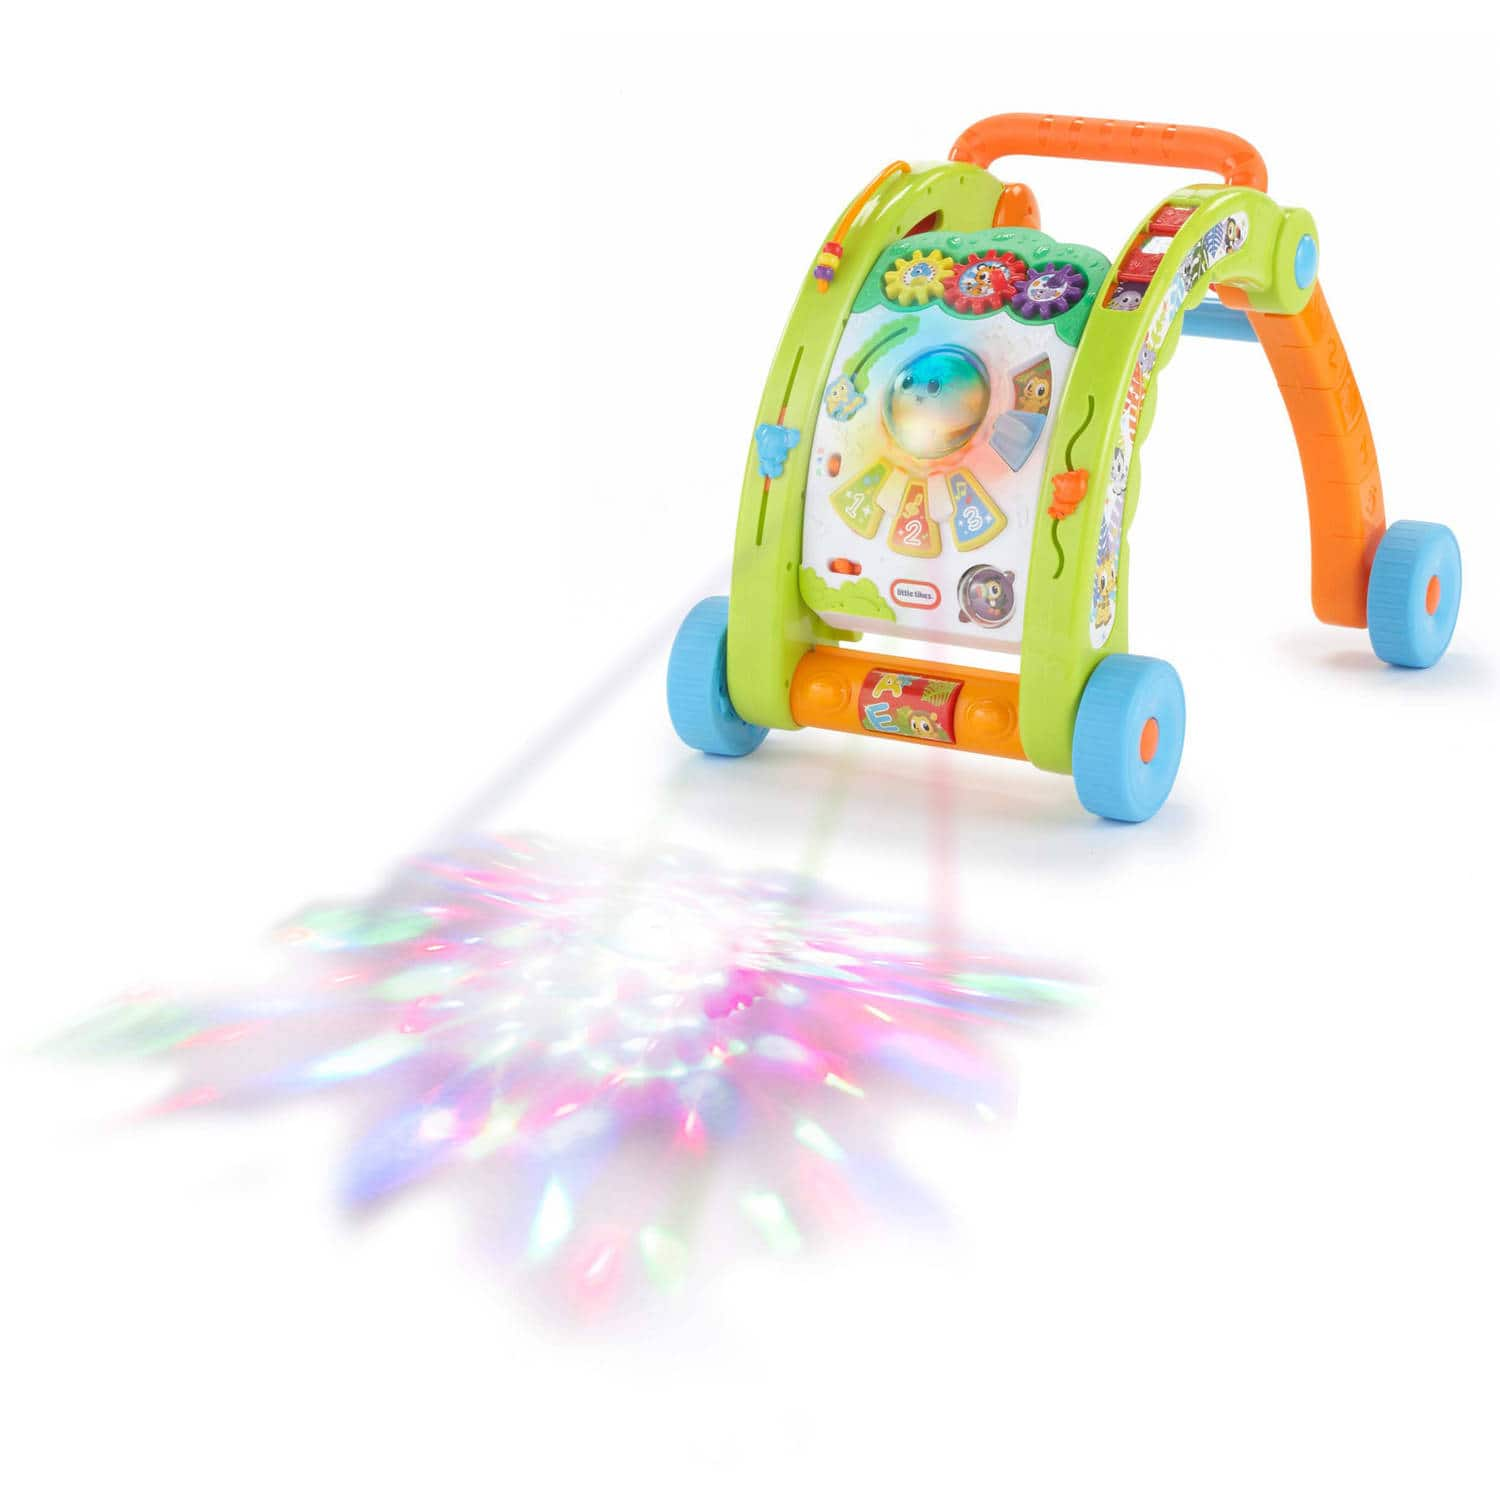 Little Tikes Light 'n Go 3-In-1 Activity Walker $15 - Walmart